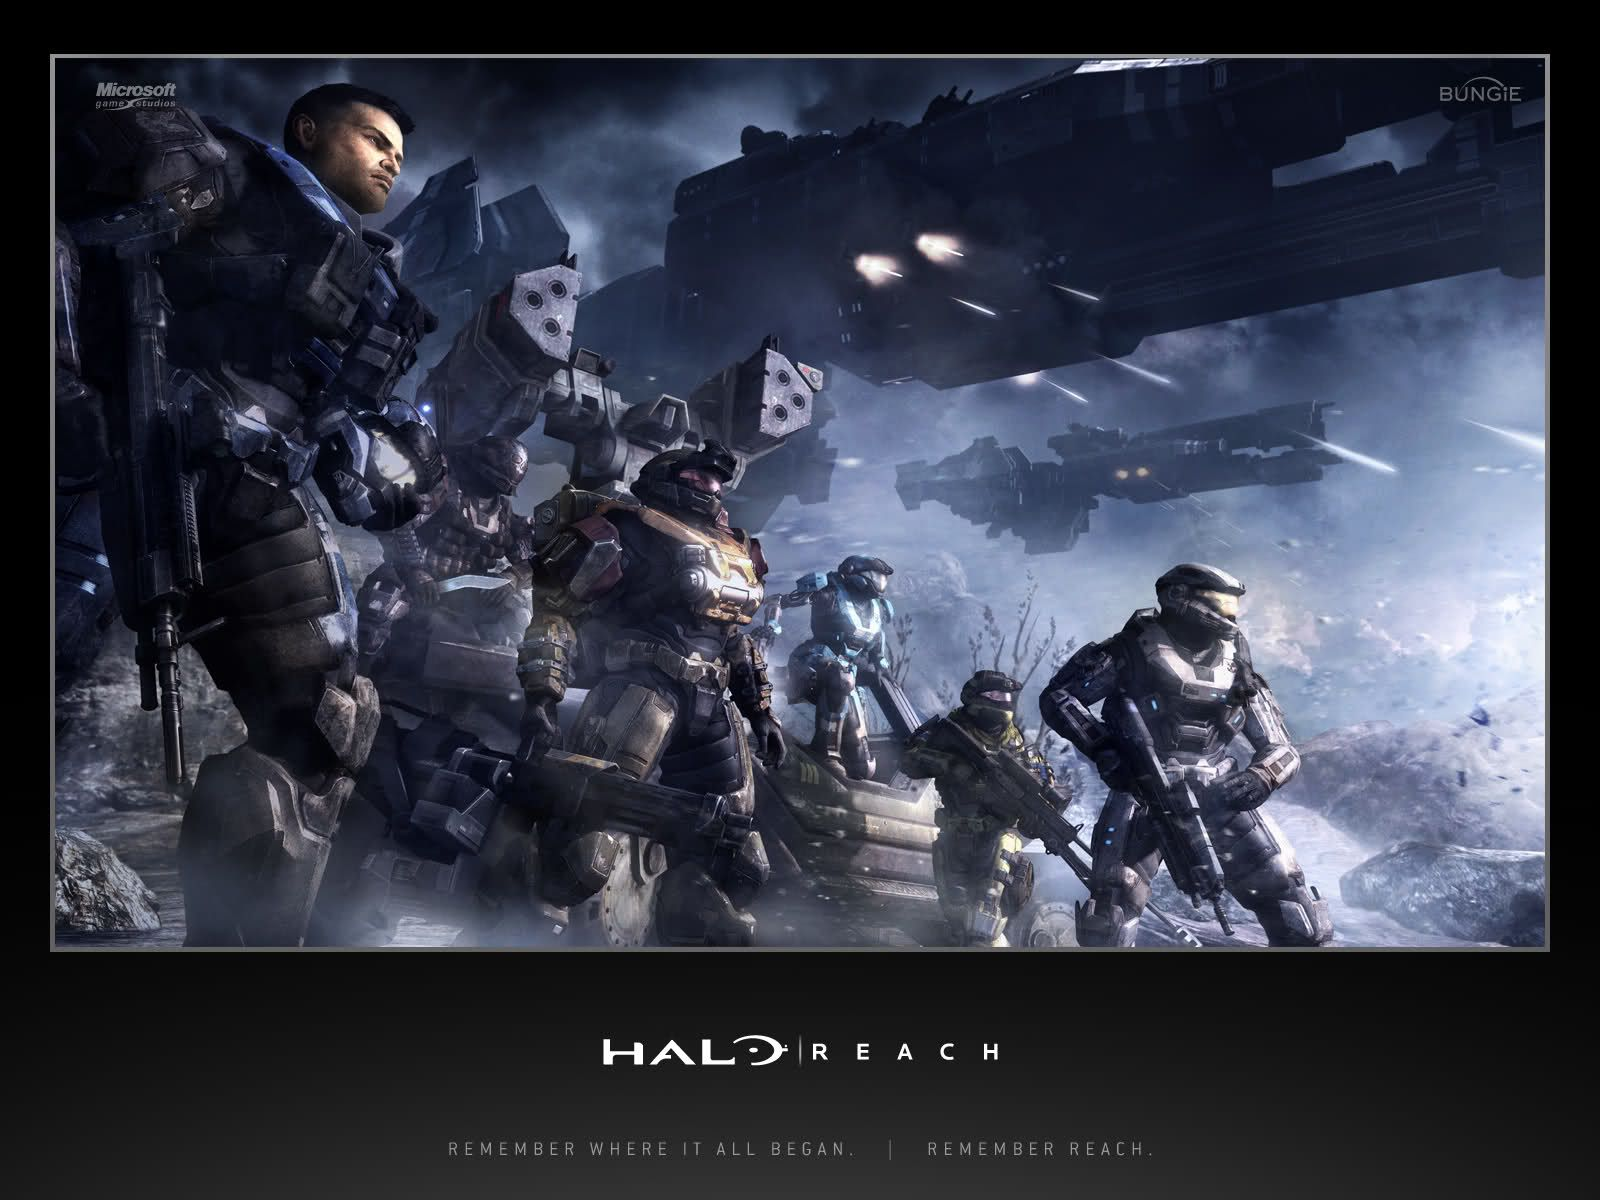 Noble Team Halo Reach Halo Game Halo Master Chief